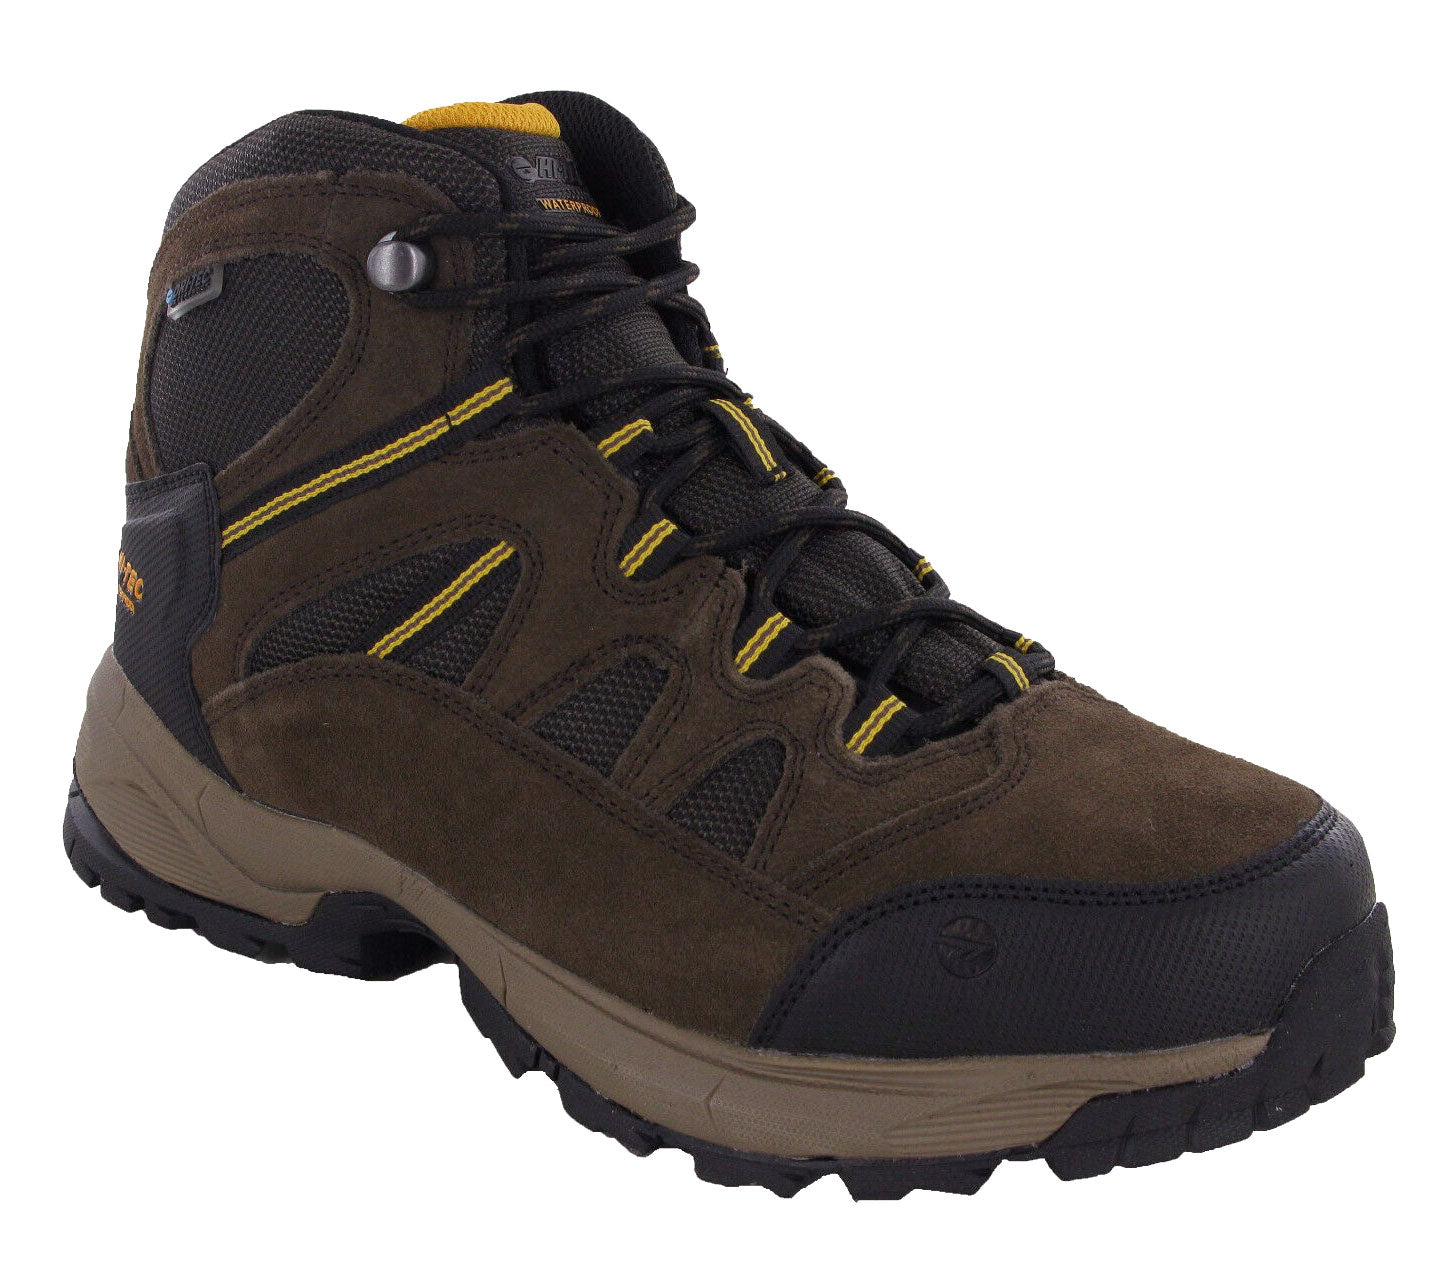 Gold and Chocolate Hi-Tec Bandera Lite Waterproof Hiking Boots